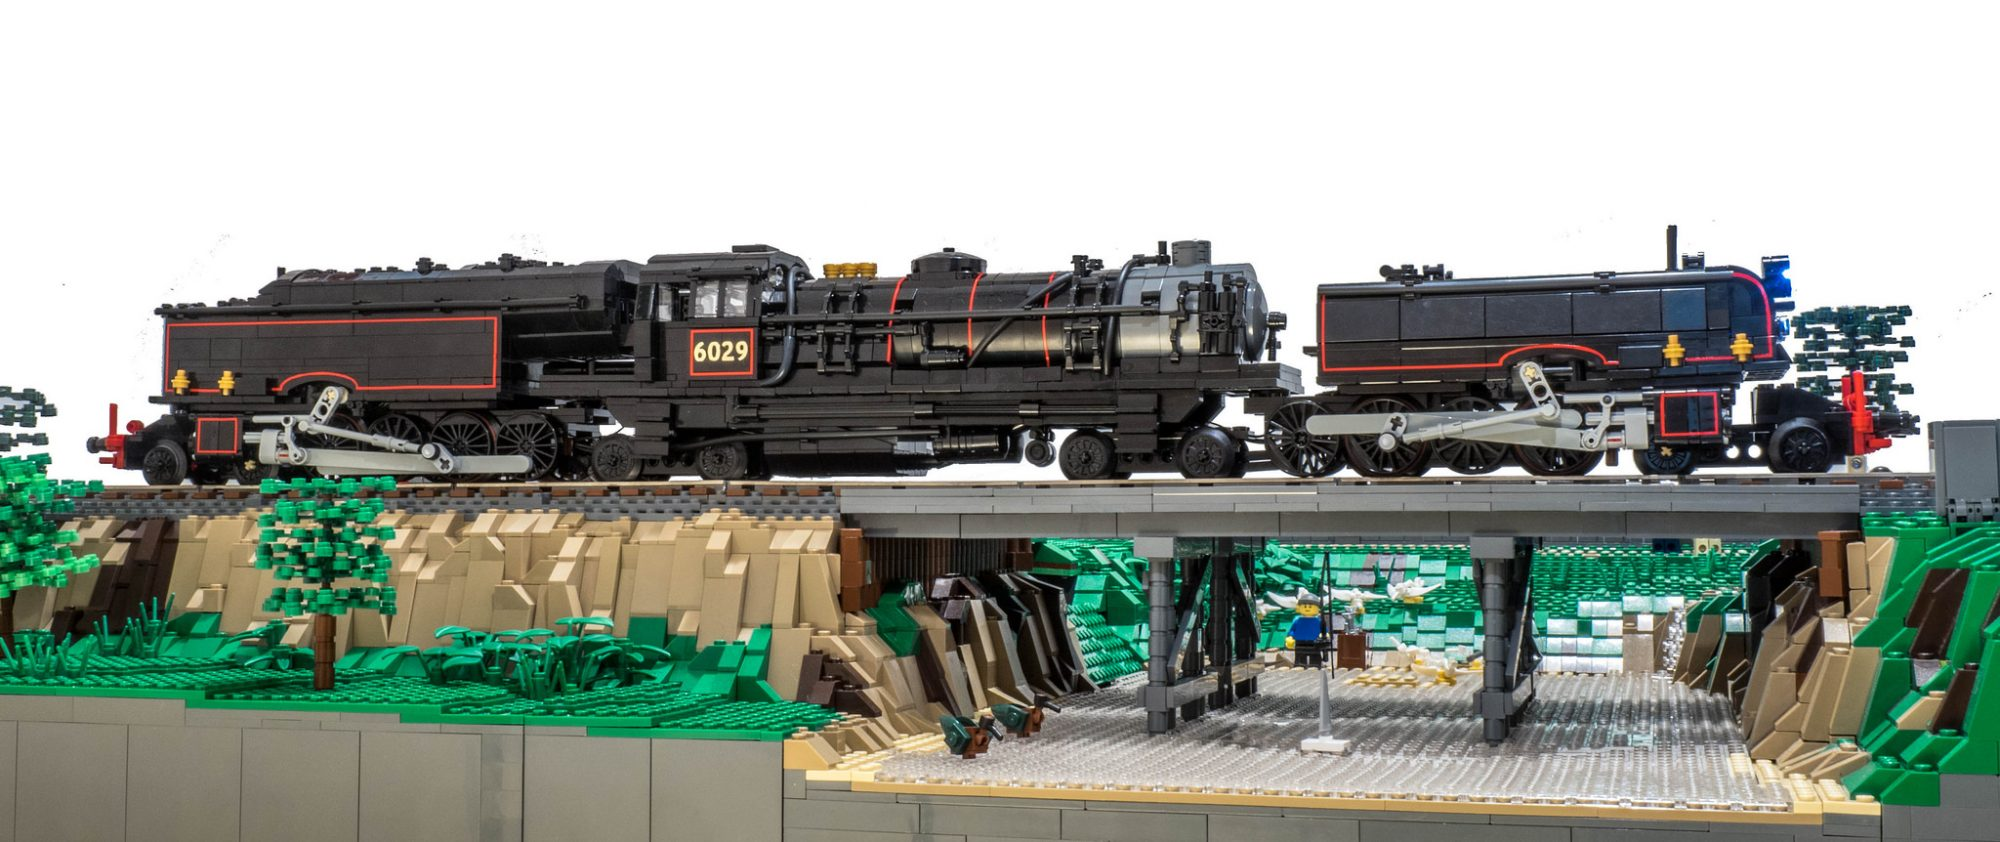 Incredible LEGO Train – NSW AD60 Class by Flickr user Alexander